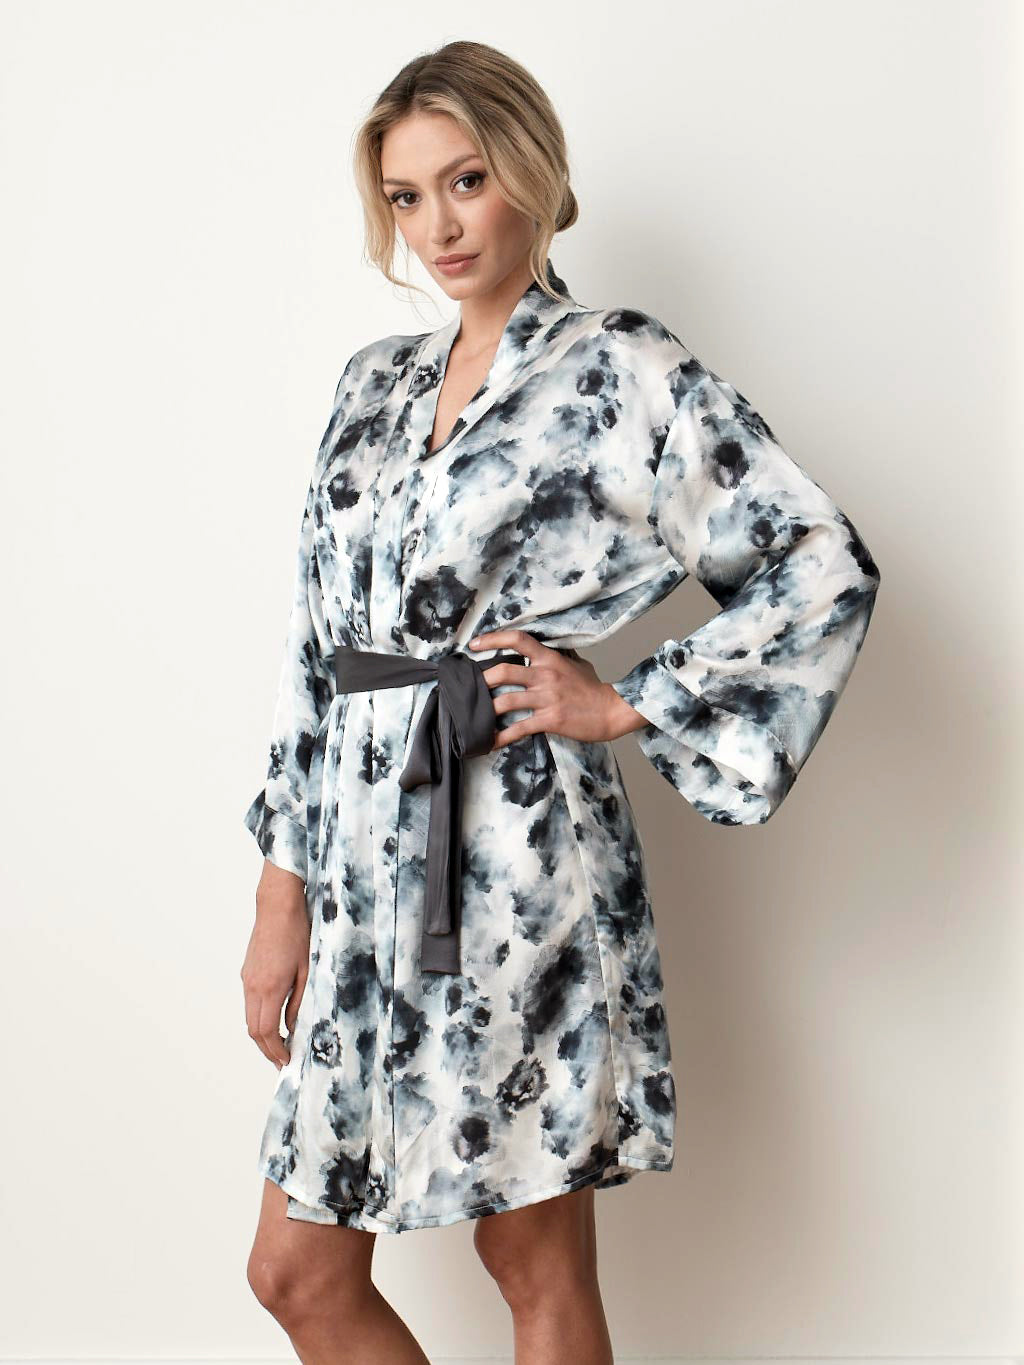 Silk satin robe - London print front